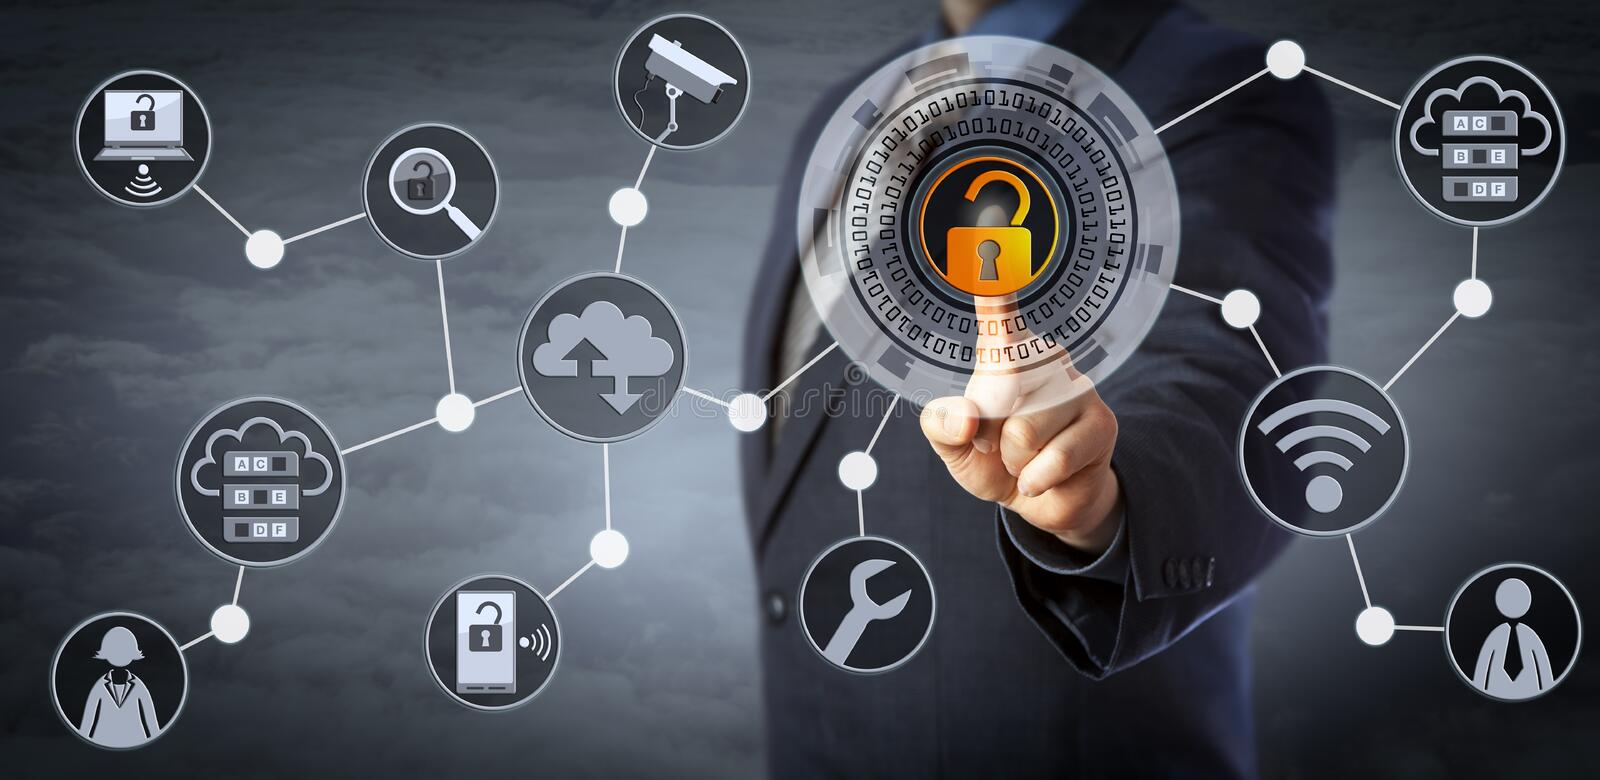 Chip Manager Unlocking Access Control azul